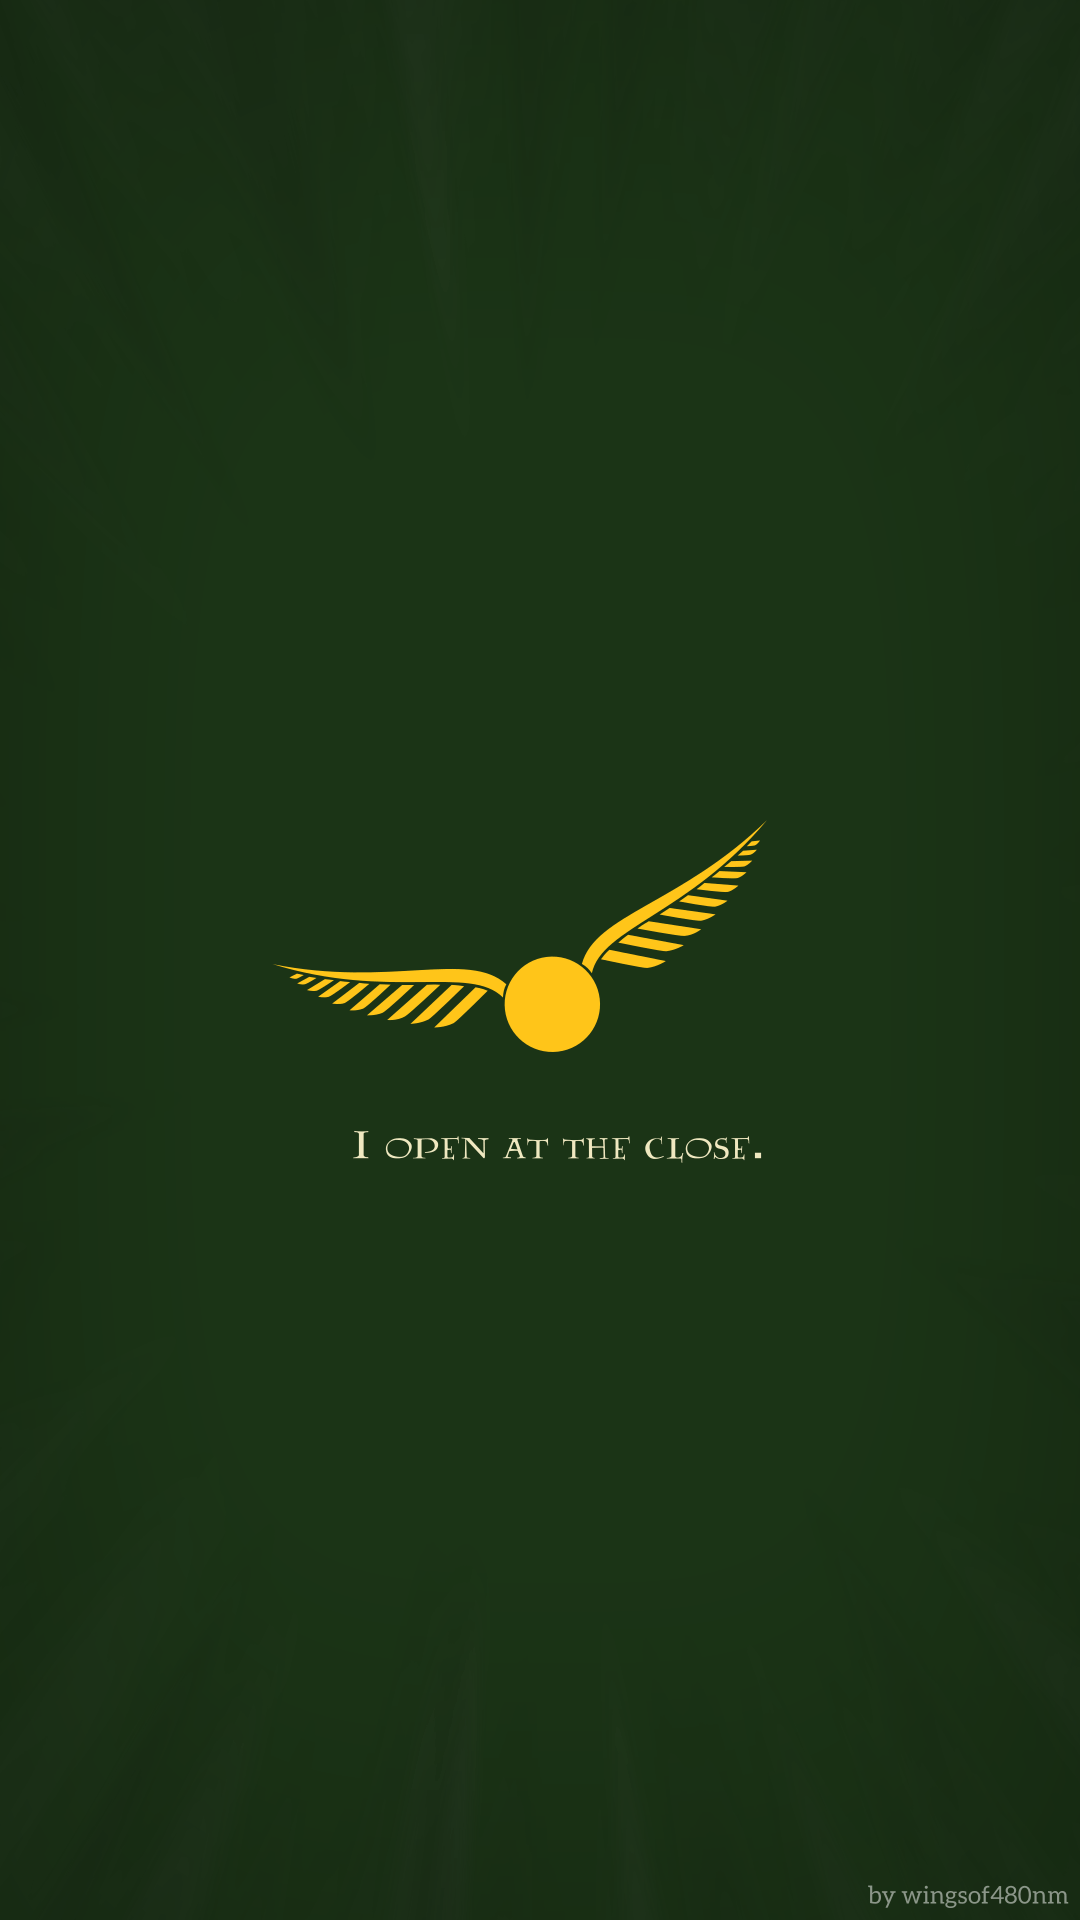 Minimalist Harry Potter Wallpapers Top Free Minimalist Harry Potter Backgrounds Wallpaperaccess